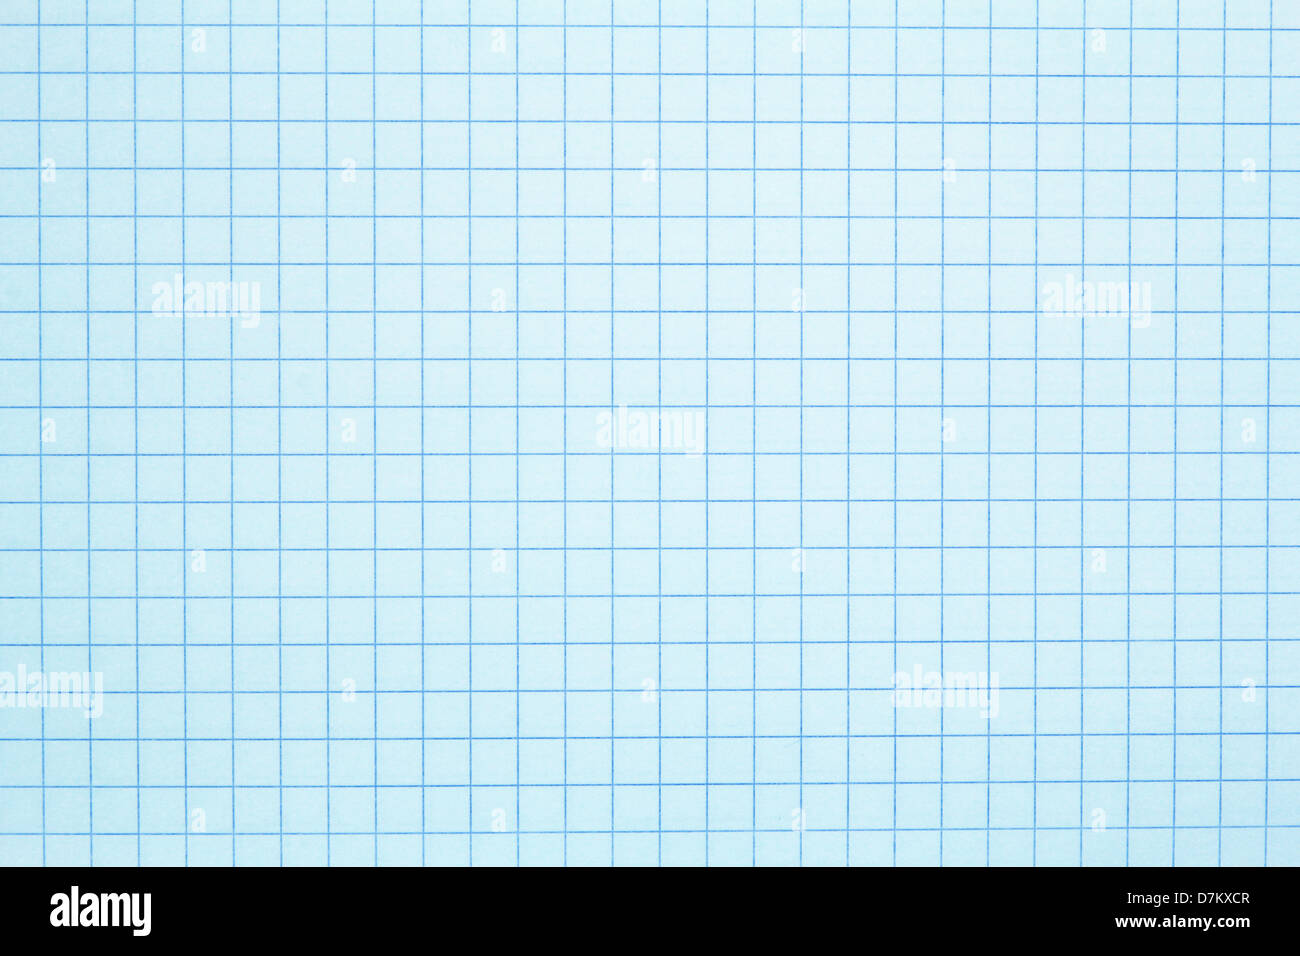 blue squared paper texture Stock Photo: 56371527 - Alamy